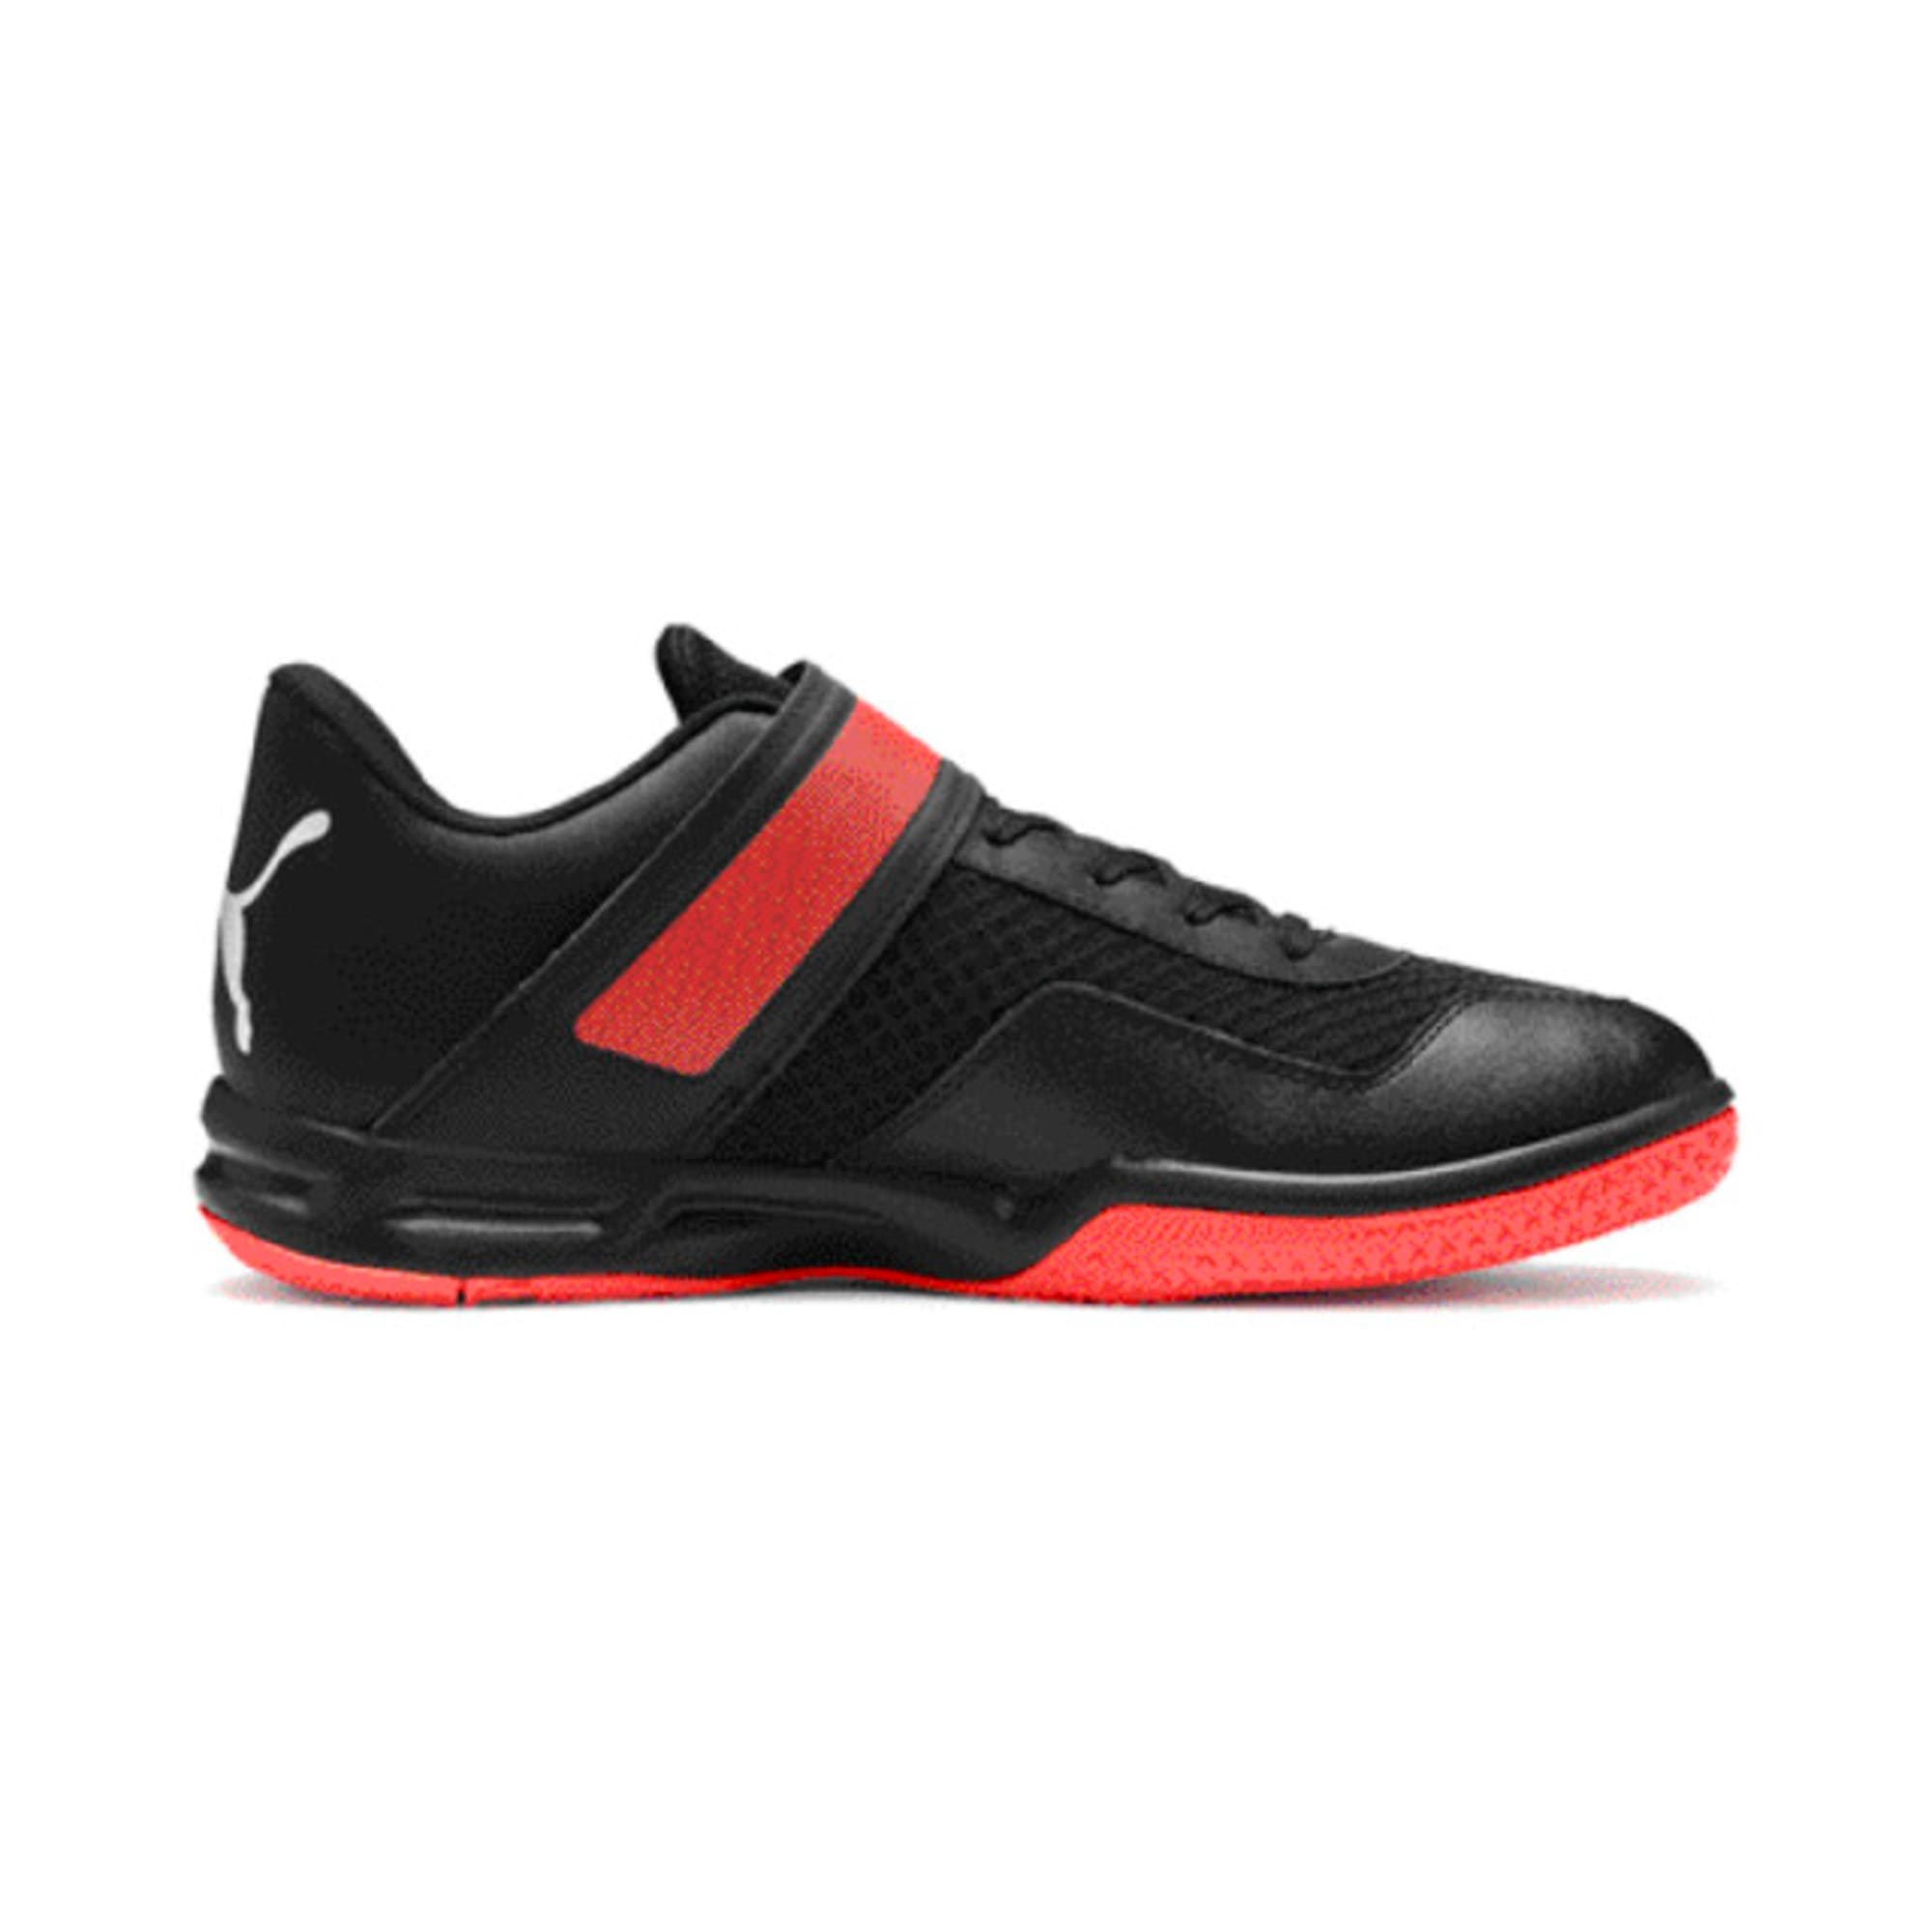 Thumbnail 5 of Rise XT 4 Men's Indoor Sports Trainers, Puma Black-Silver-Nrgy Red, medium-IND